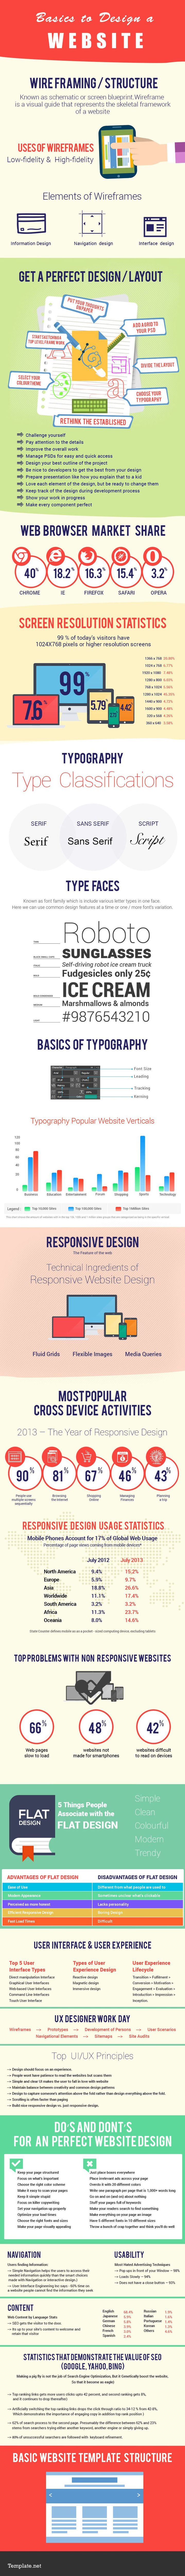 What Are Some Essential Fundamentals Of Website Design? #infographic